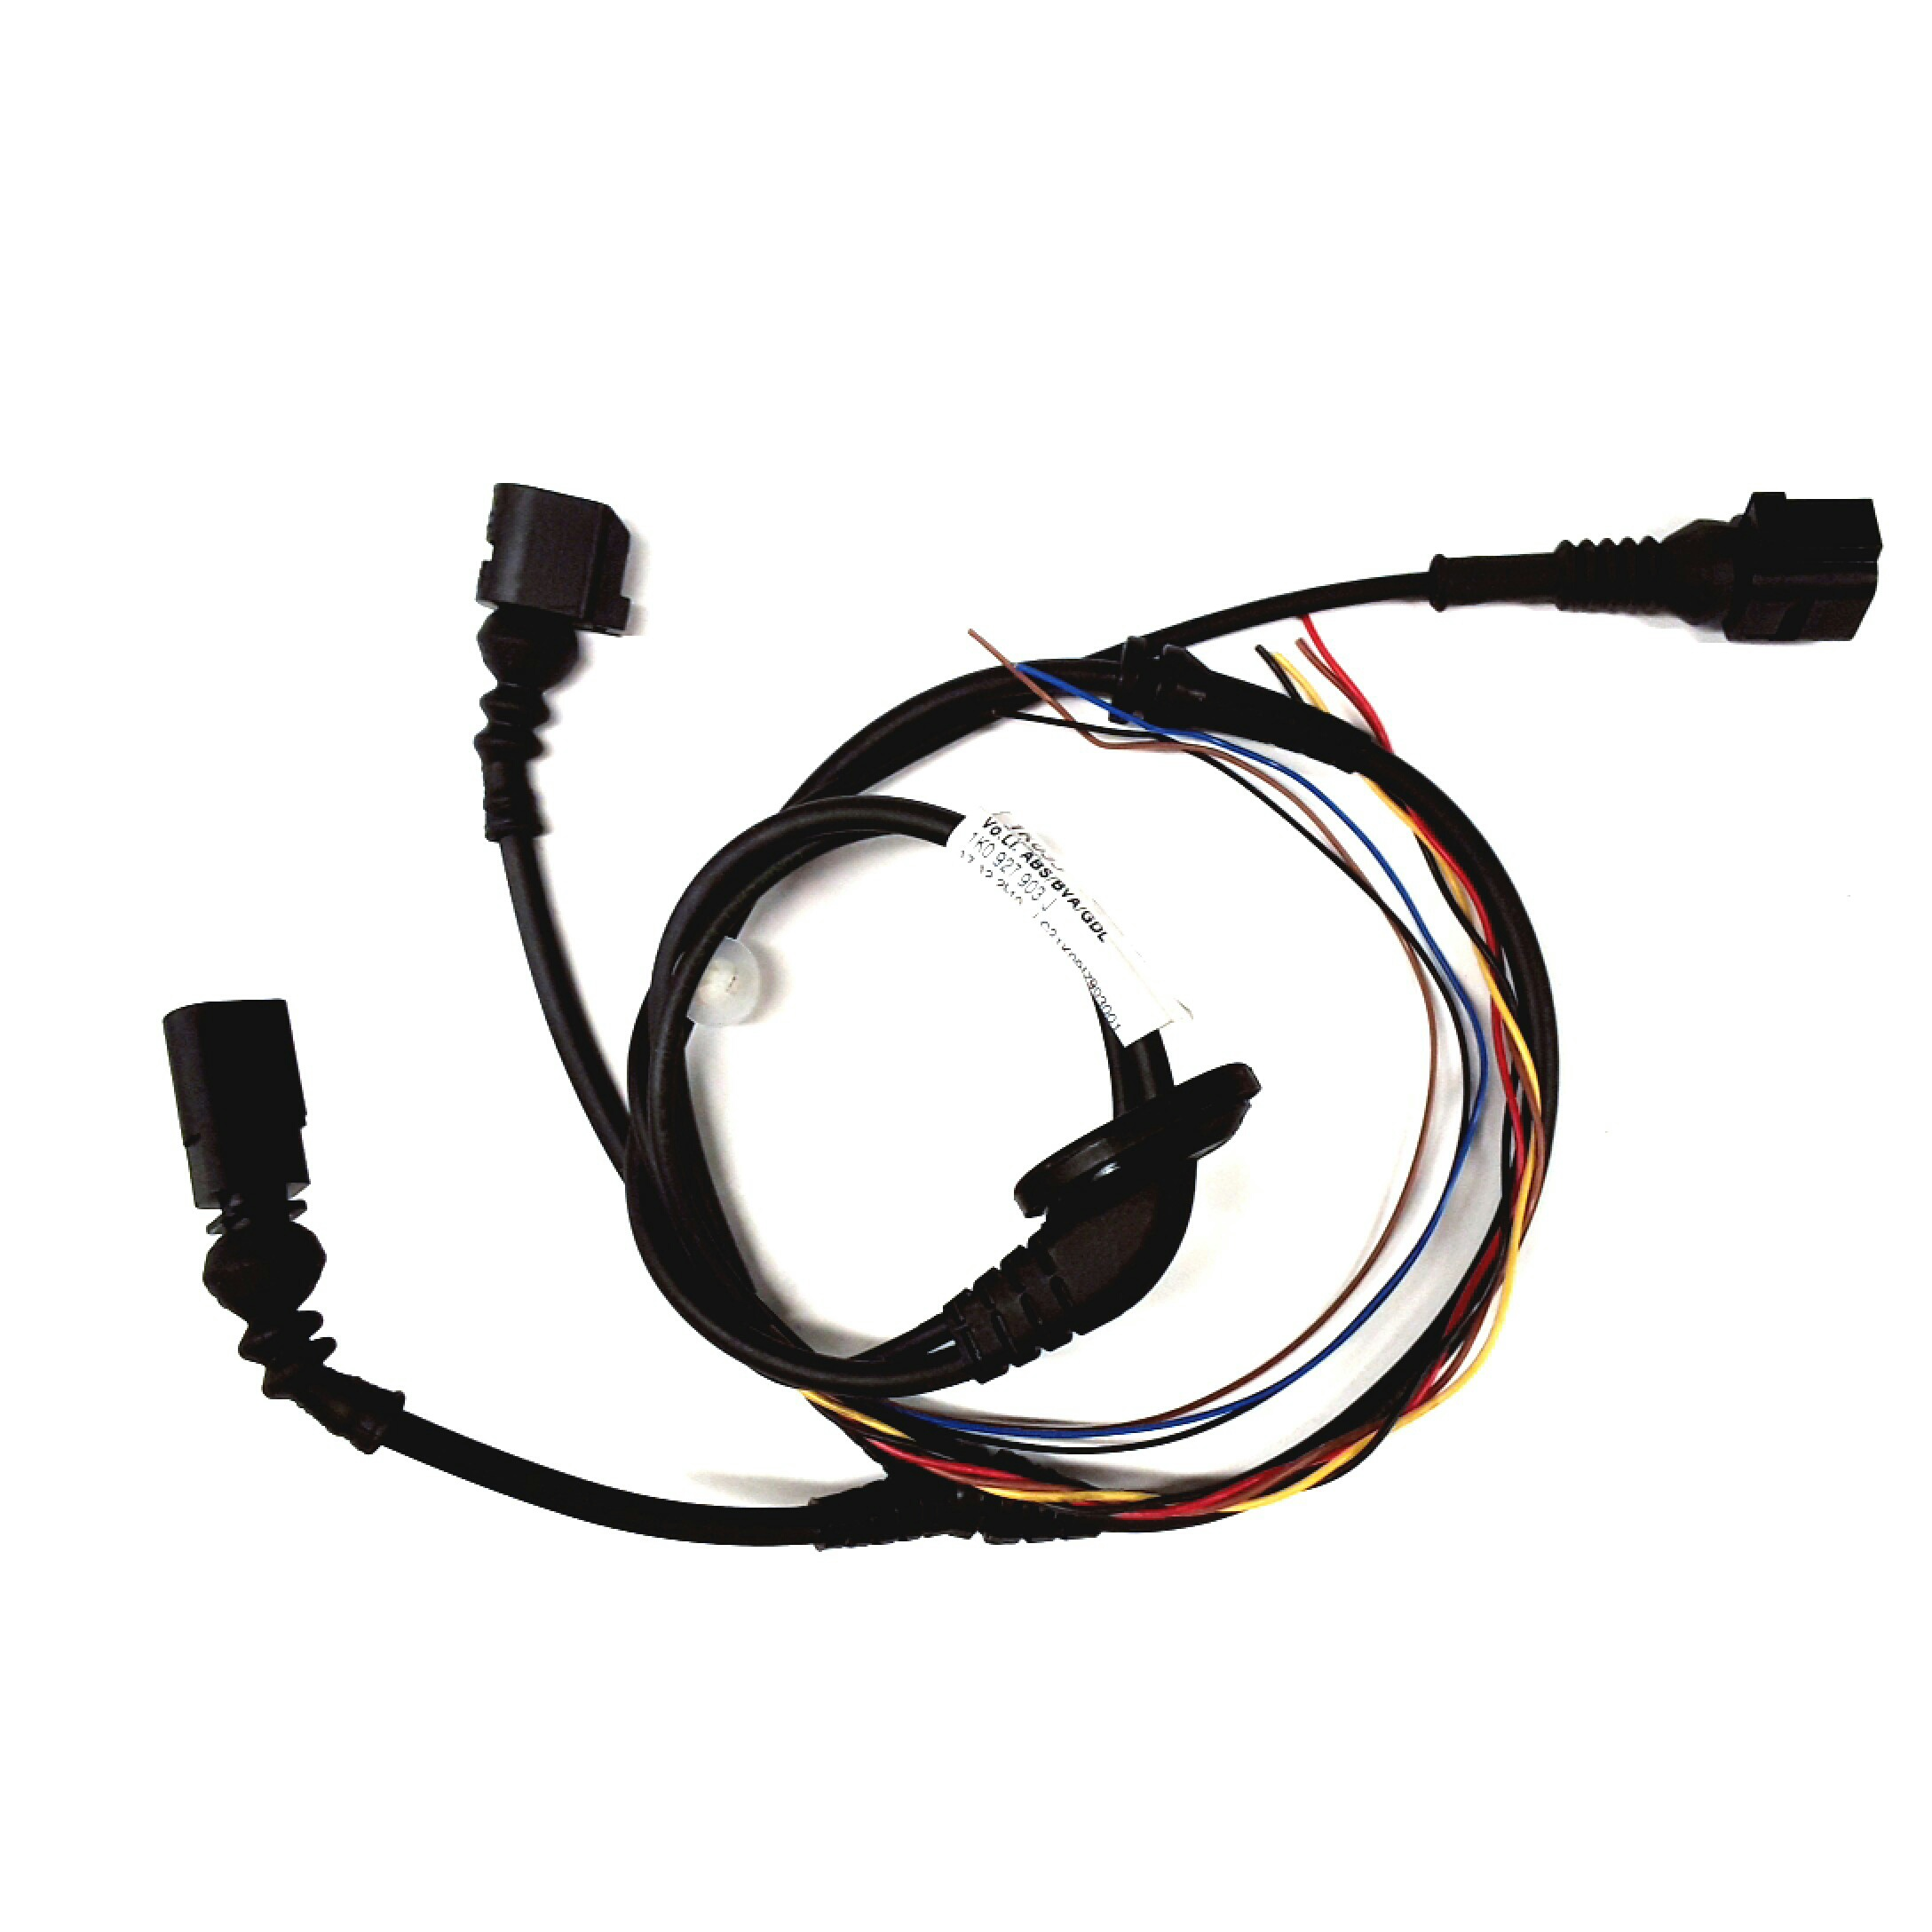 2006 Vw Jetta Door Wiring Harness Part Number : Volkswagen jetta gli abs sensor wire harness audi